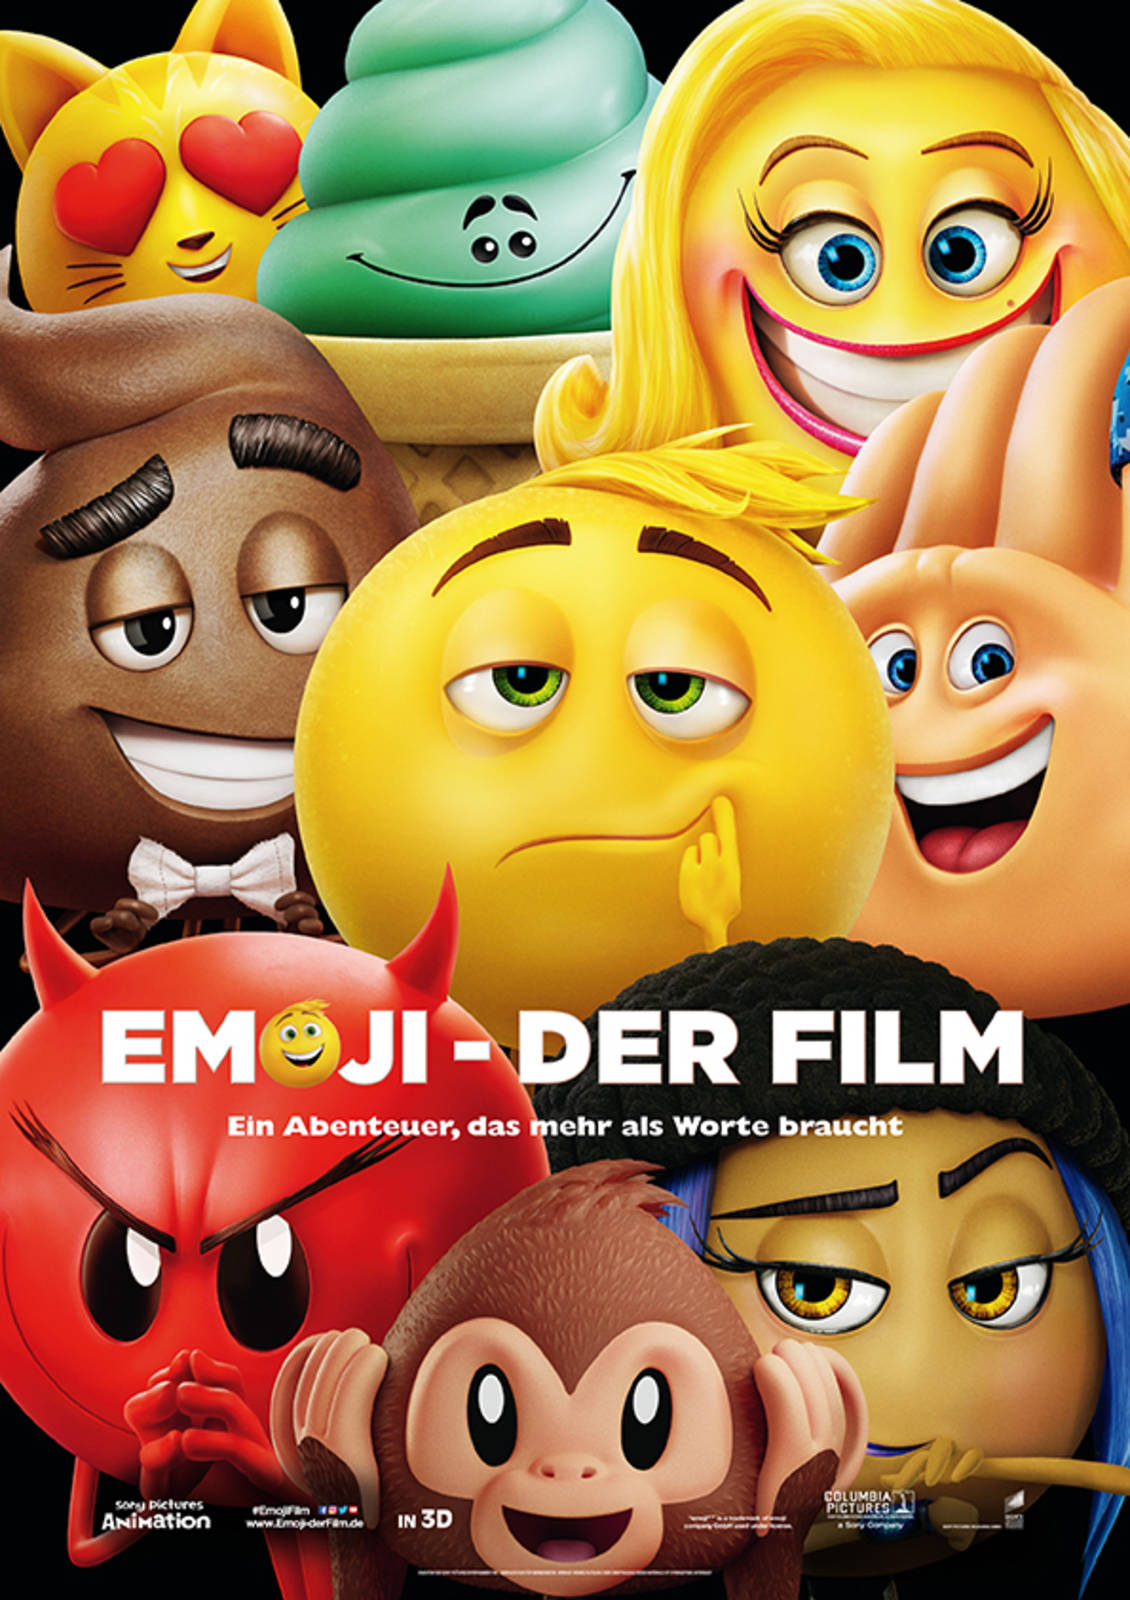 Film Emoji Der Film Cineman